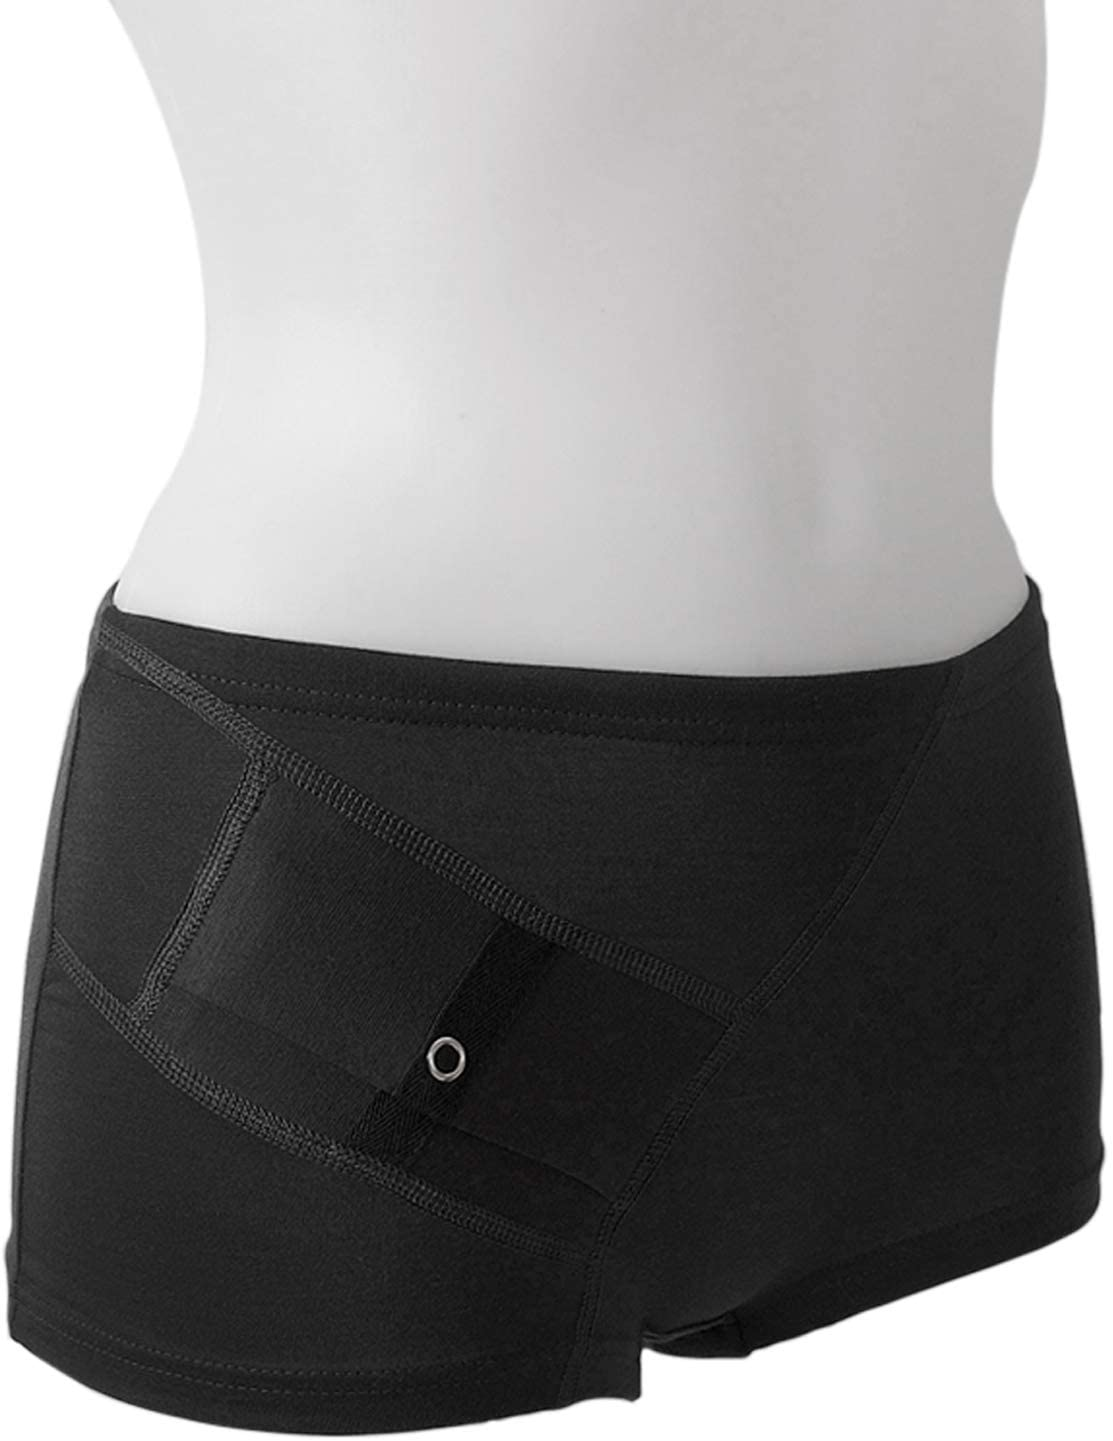 AnnaPS Diabetes Women's Small Hipster Panties Underwear with Pocket for Insulin Pump (S)